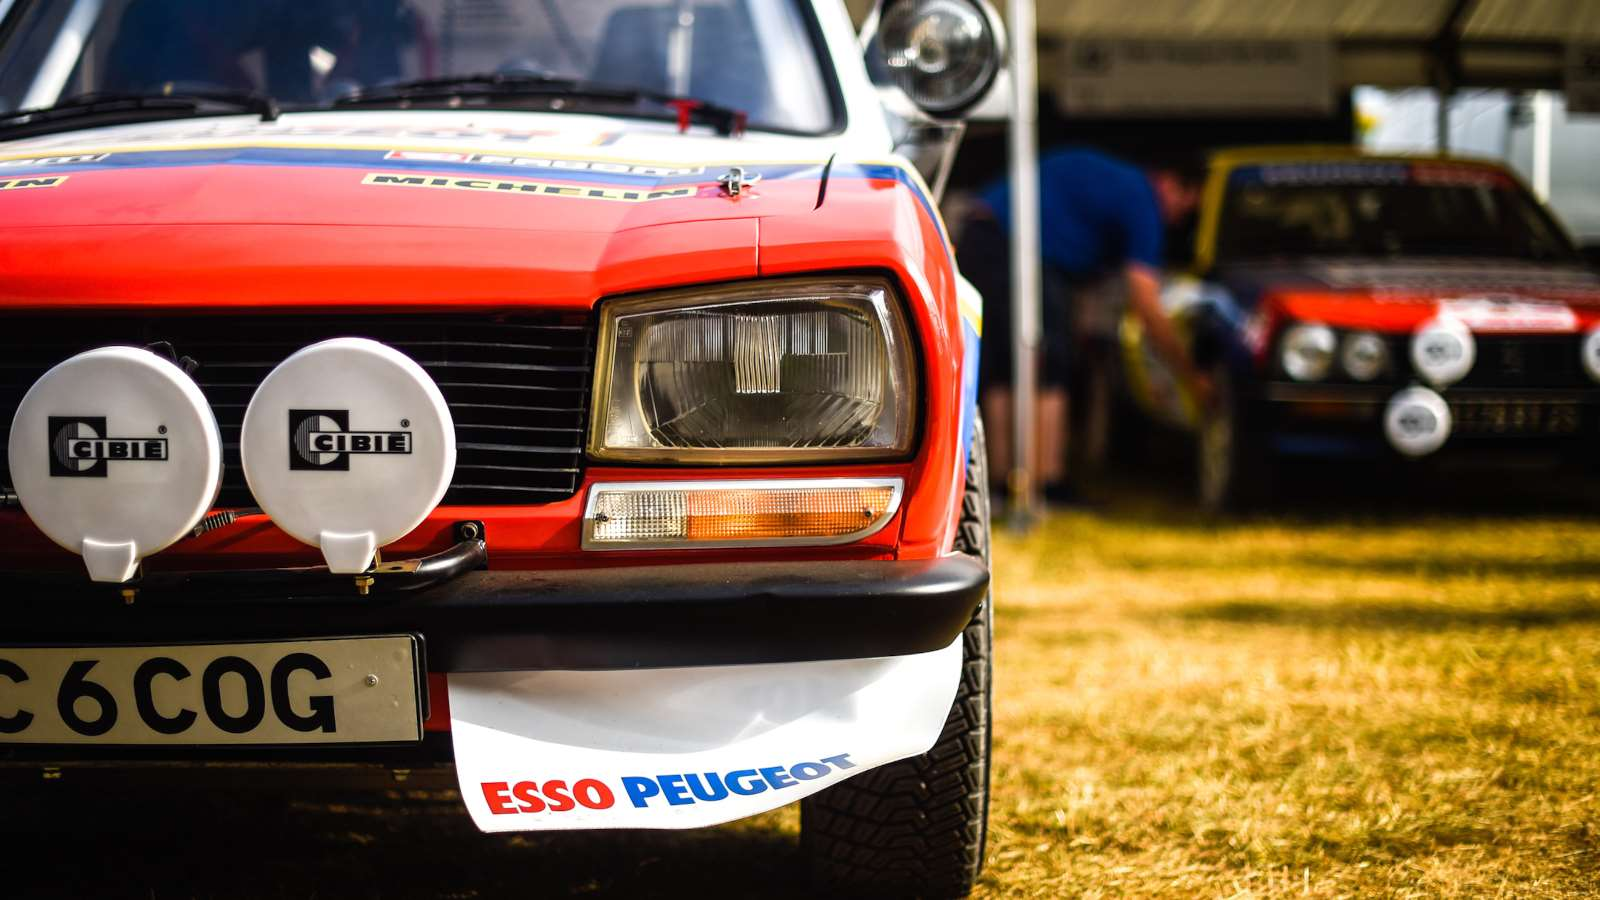 peugeot_504_pickup_fos_goodwood_31071802.jpg